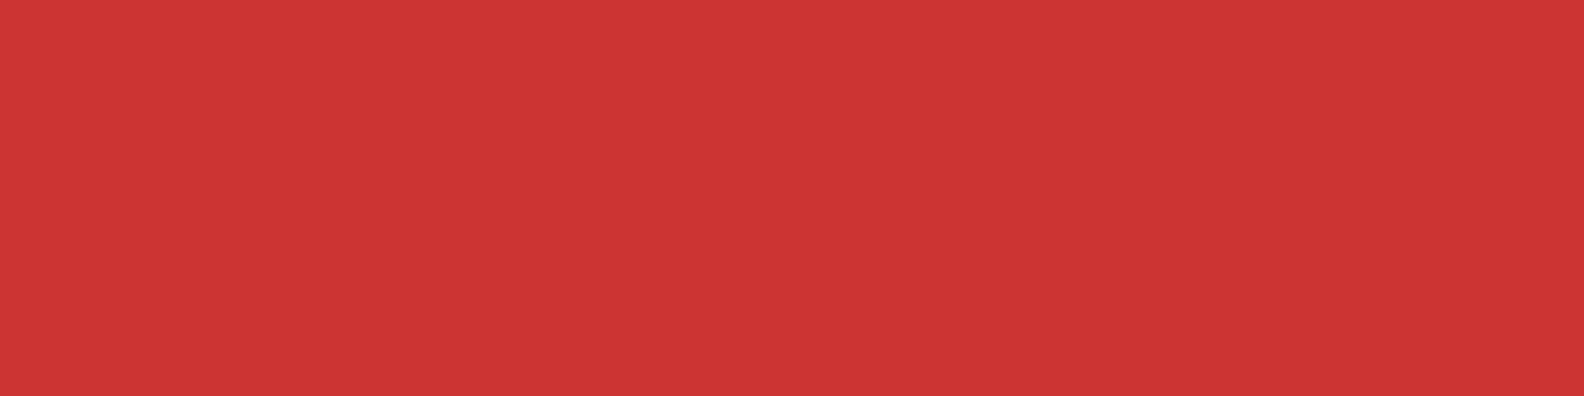 1584x396 Persian Red Solid Color Background